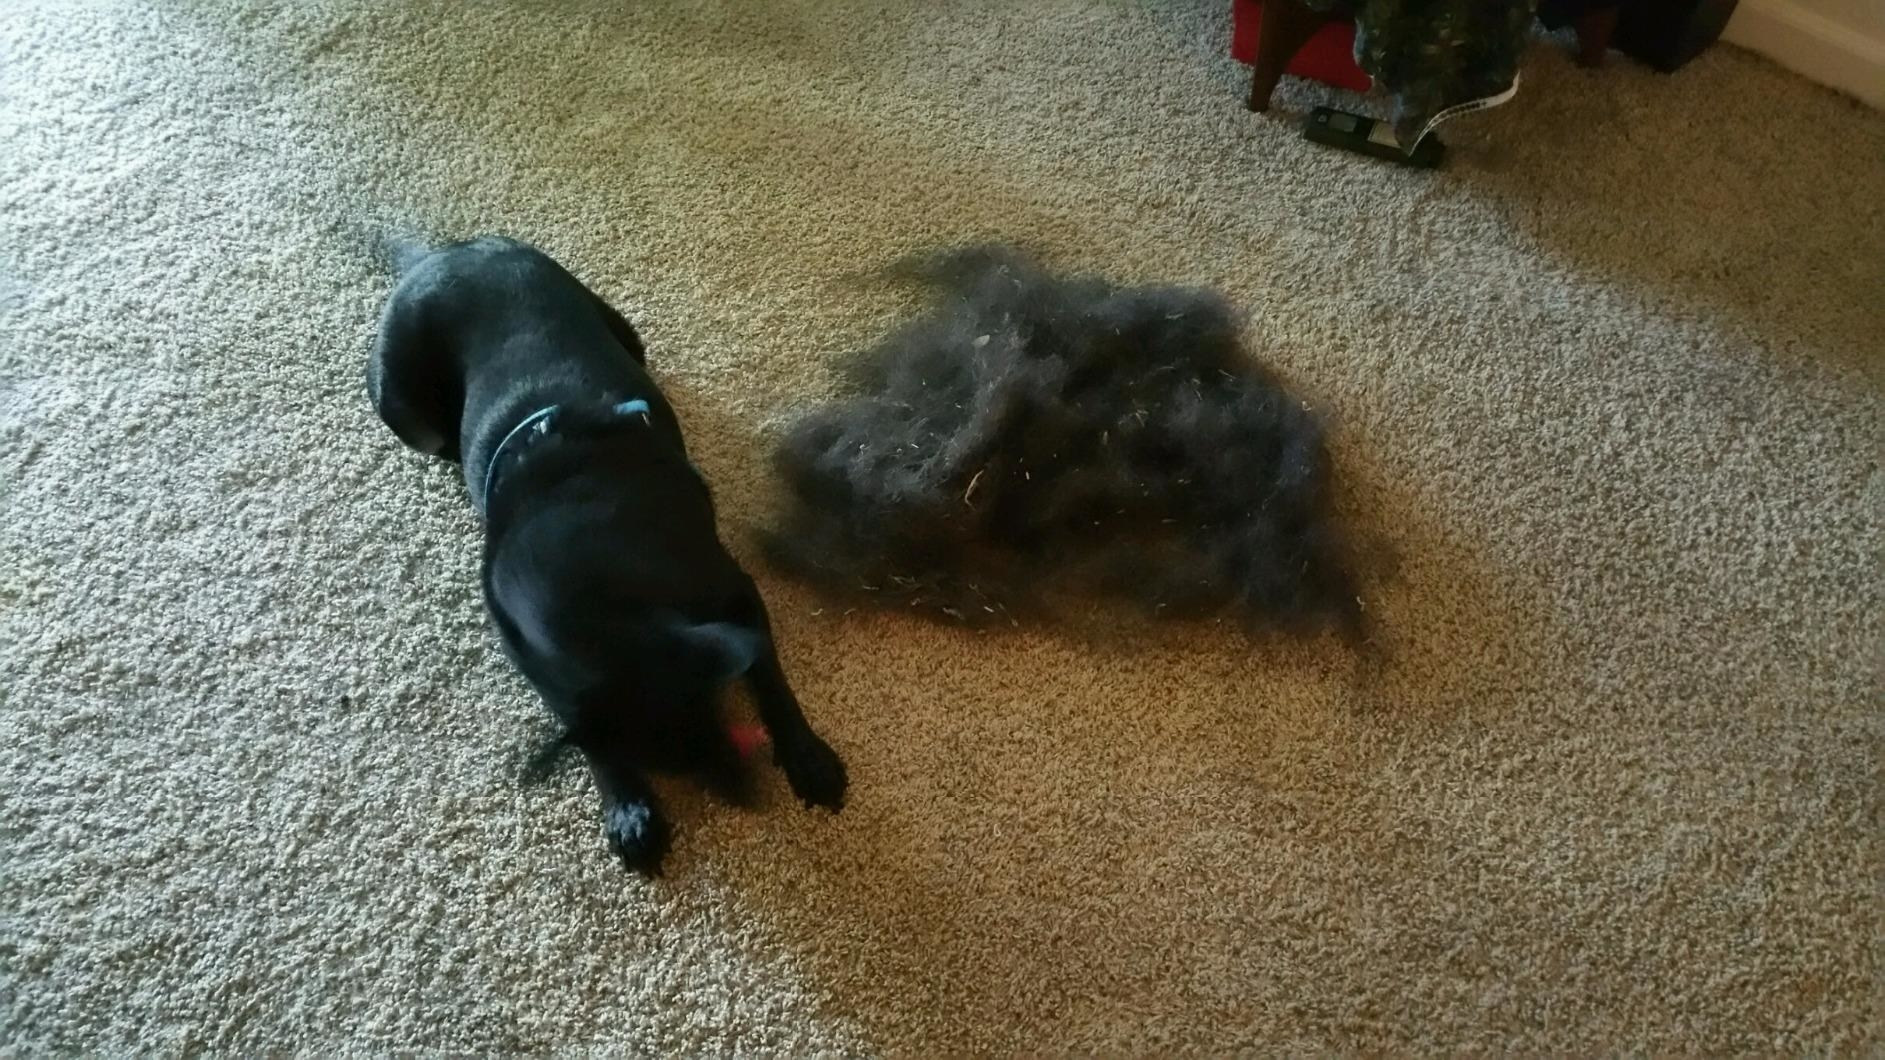 A dog next to a pile of hair